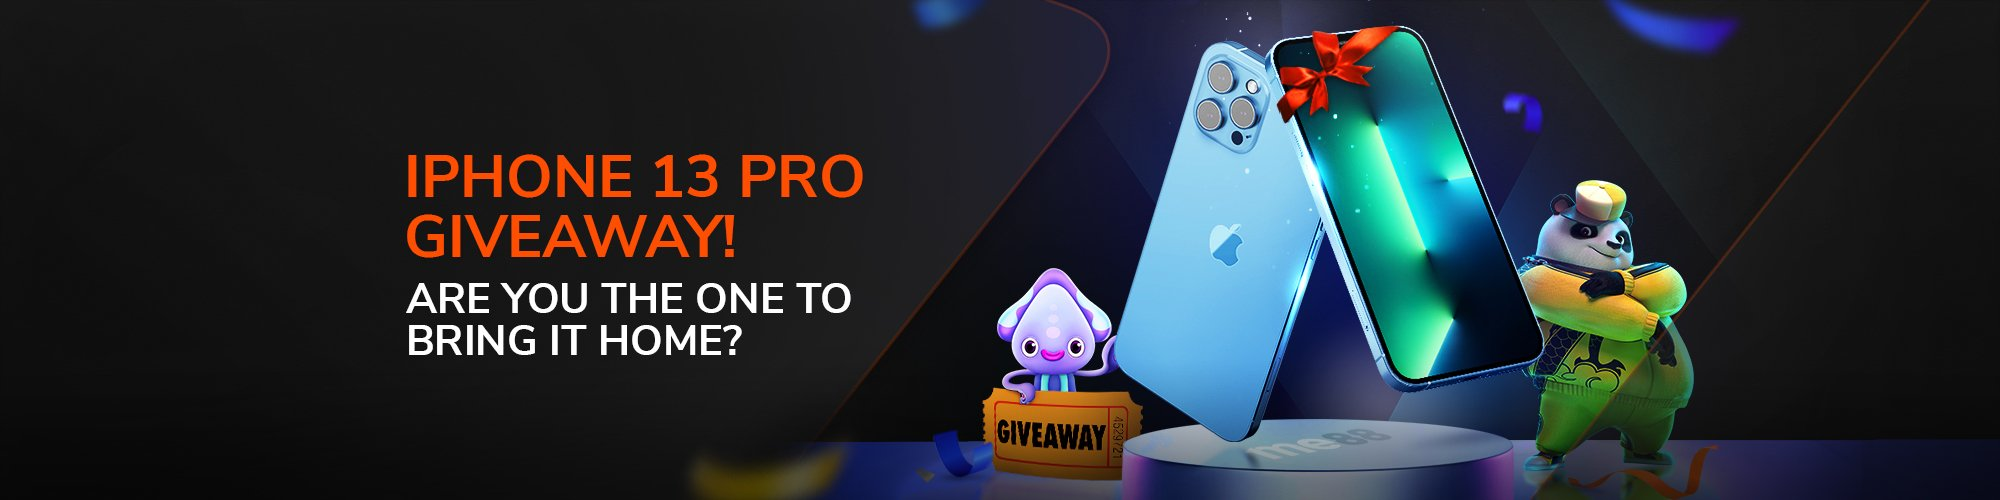 me88-iphone13-pro-giveaway